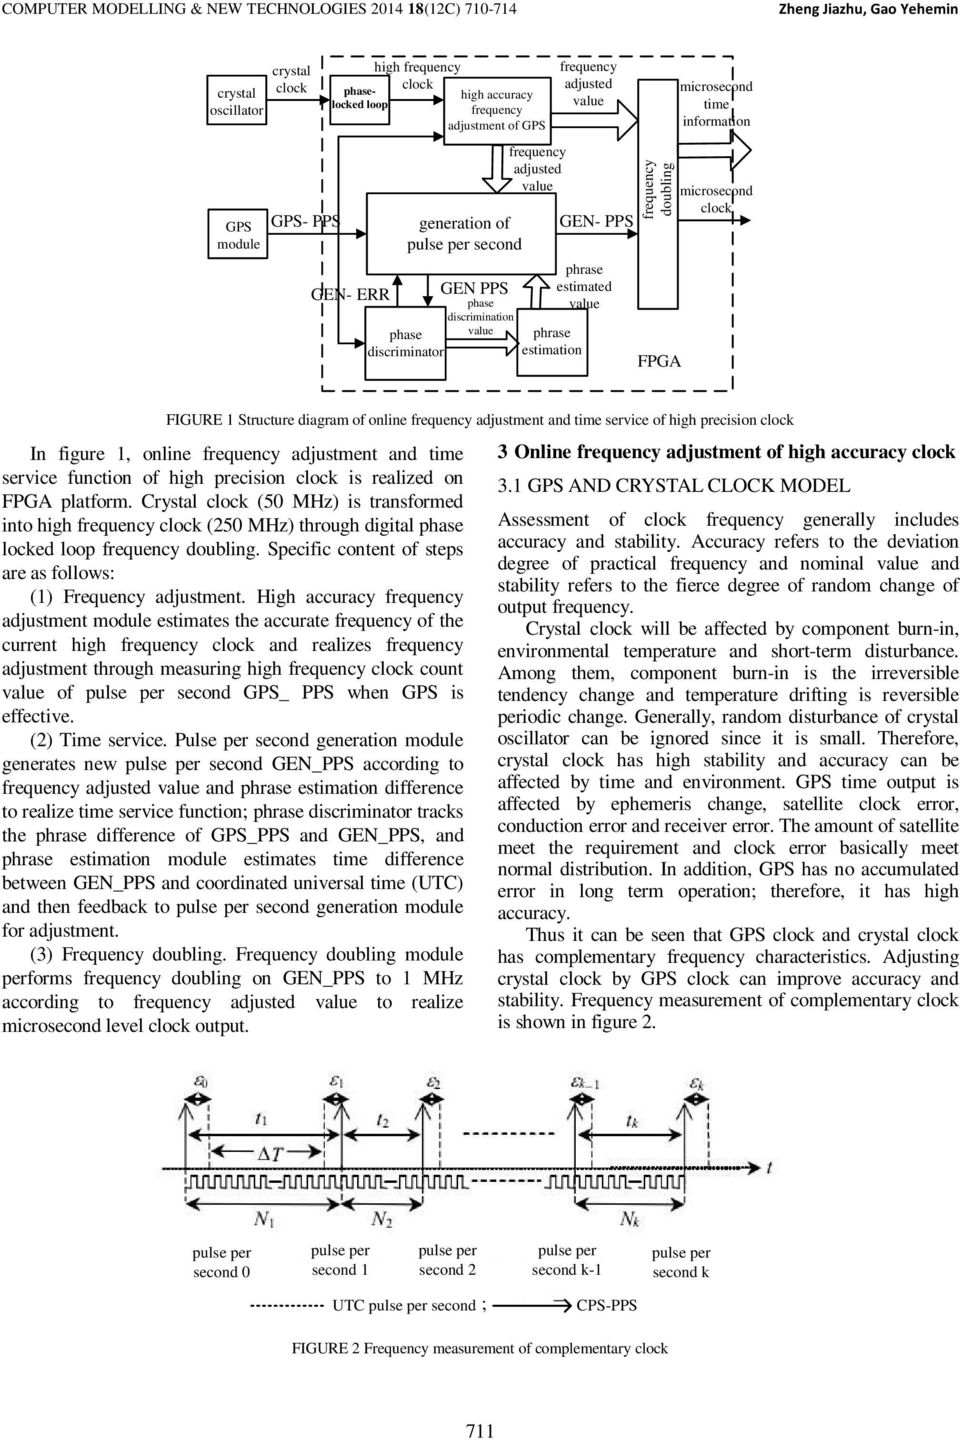 Structur diagram of oli frqucy adjustmt ad tim srvic of high prcisio cloc I figur 1, oli frqucy adjustmt ad tim srvic fuctio of high prcisio cloc is ralizd o FPGA platform.